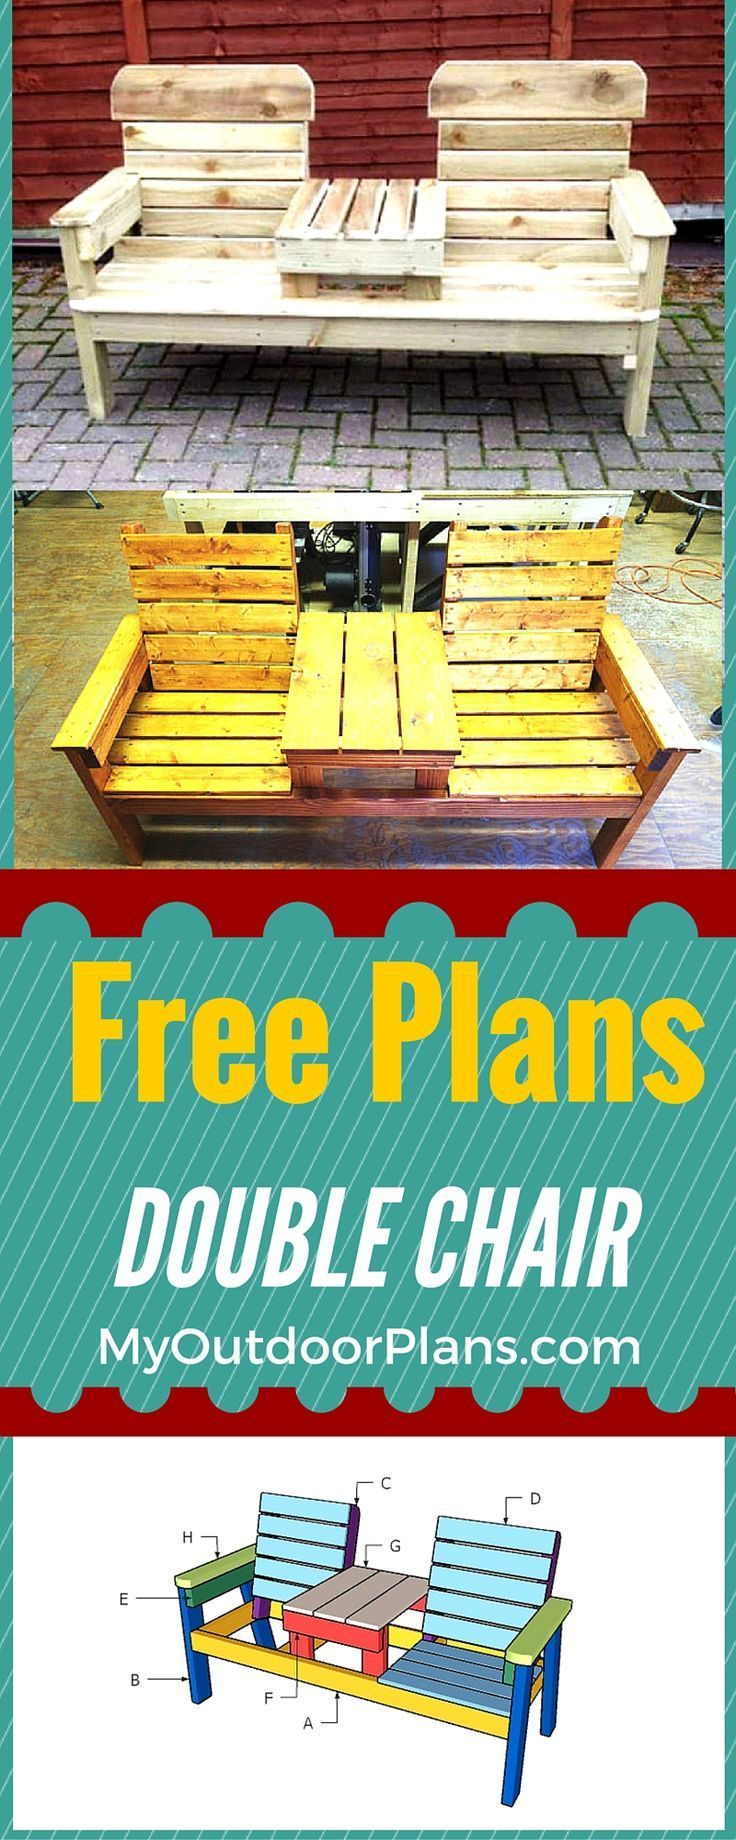 Step by step outdoor furniture plans - Learn how to build outdoor furniture with my detailed instructions! From patio chairs to outdoor benches I have lots of free plans so you can make the best choice! www.myoutdoorplan... #diy #outdoorfurniture #backyard